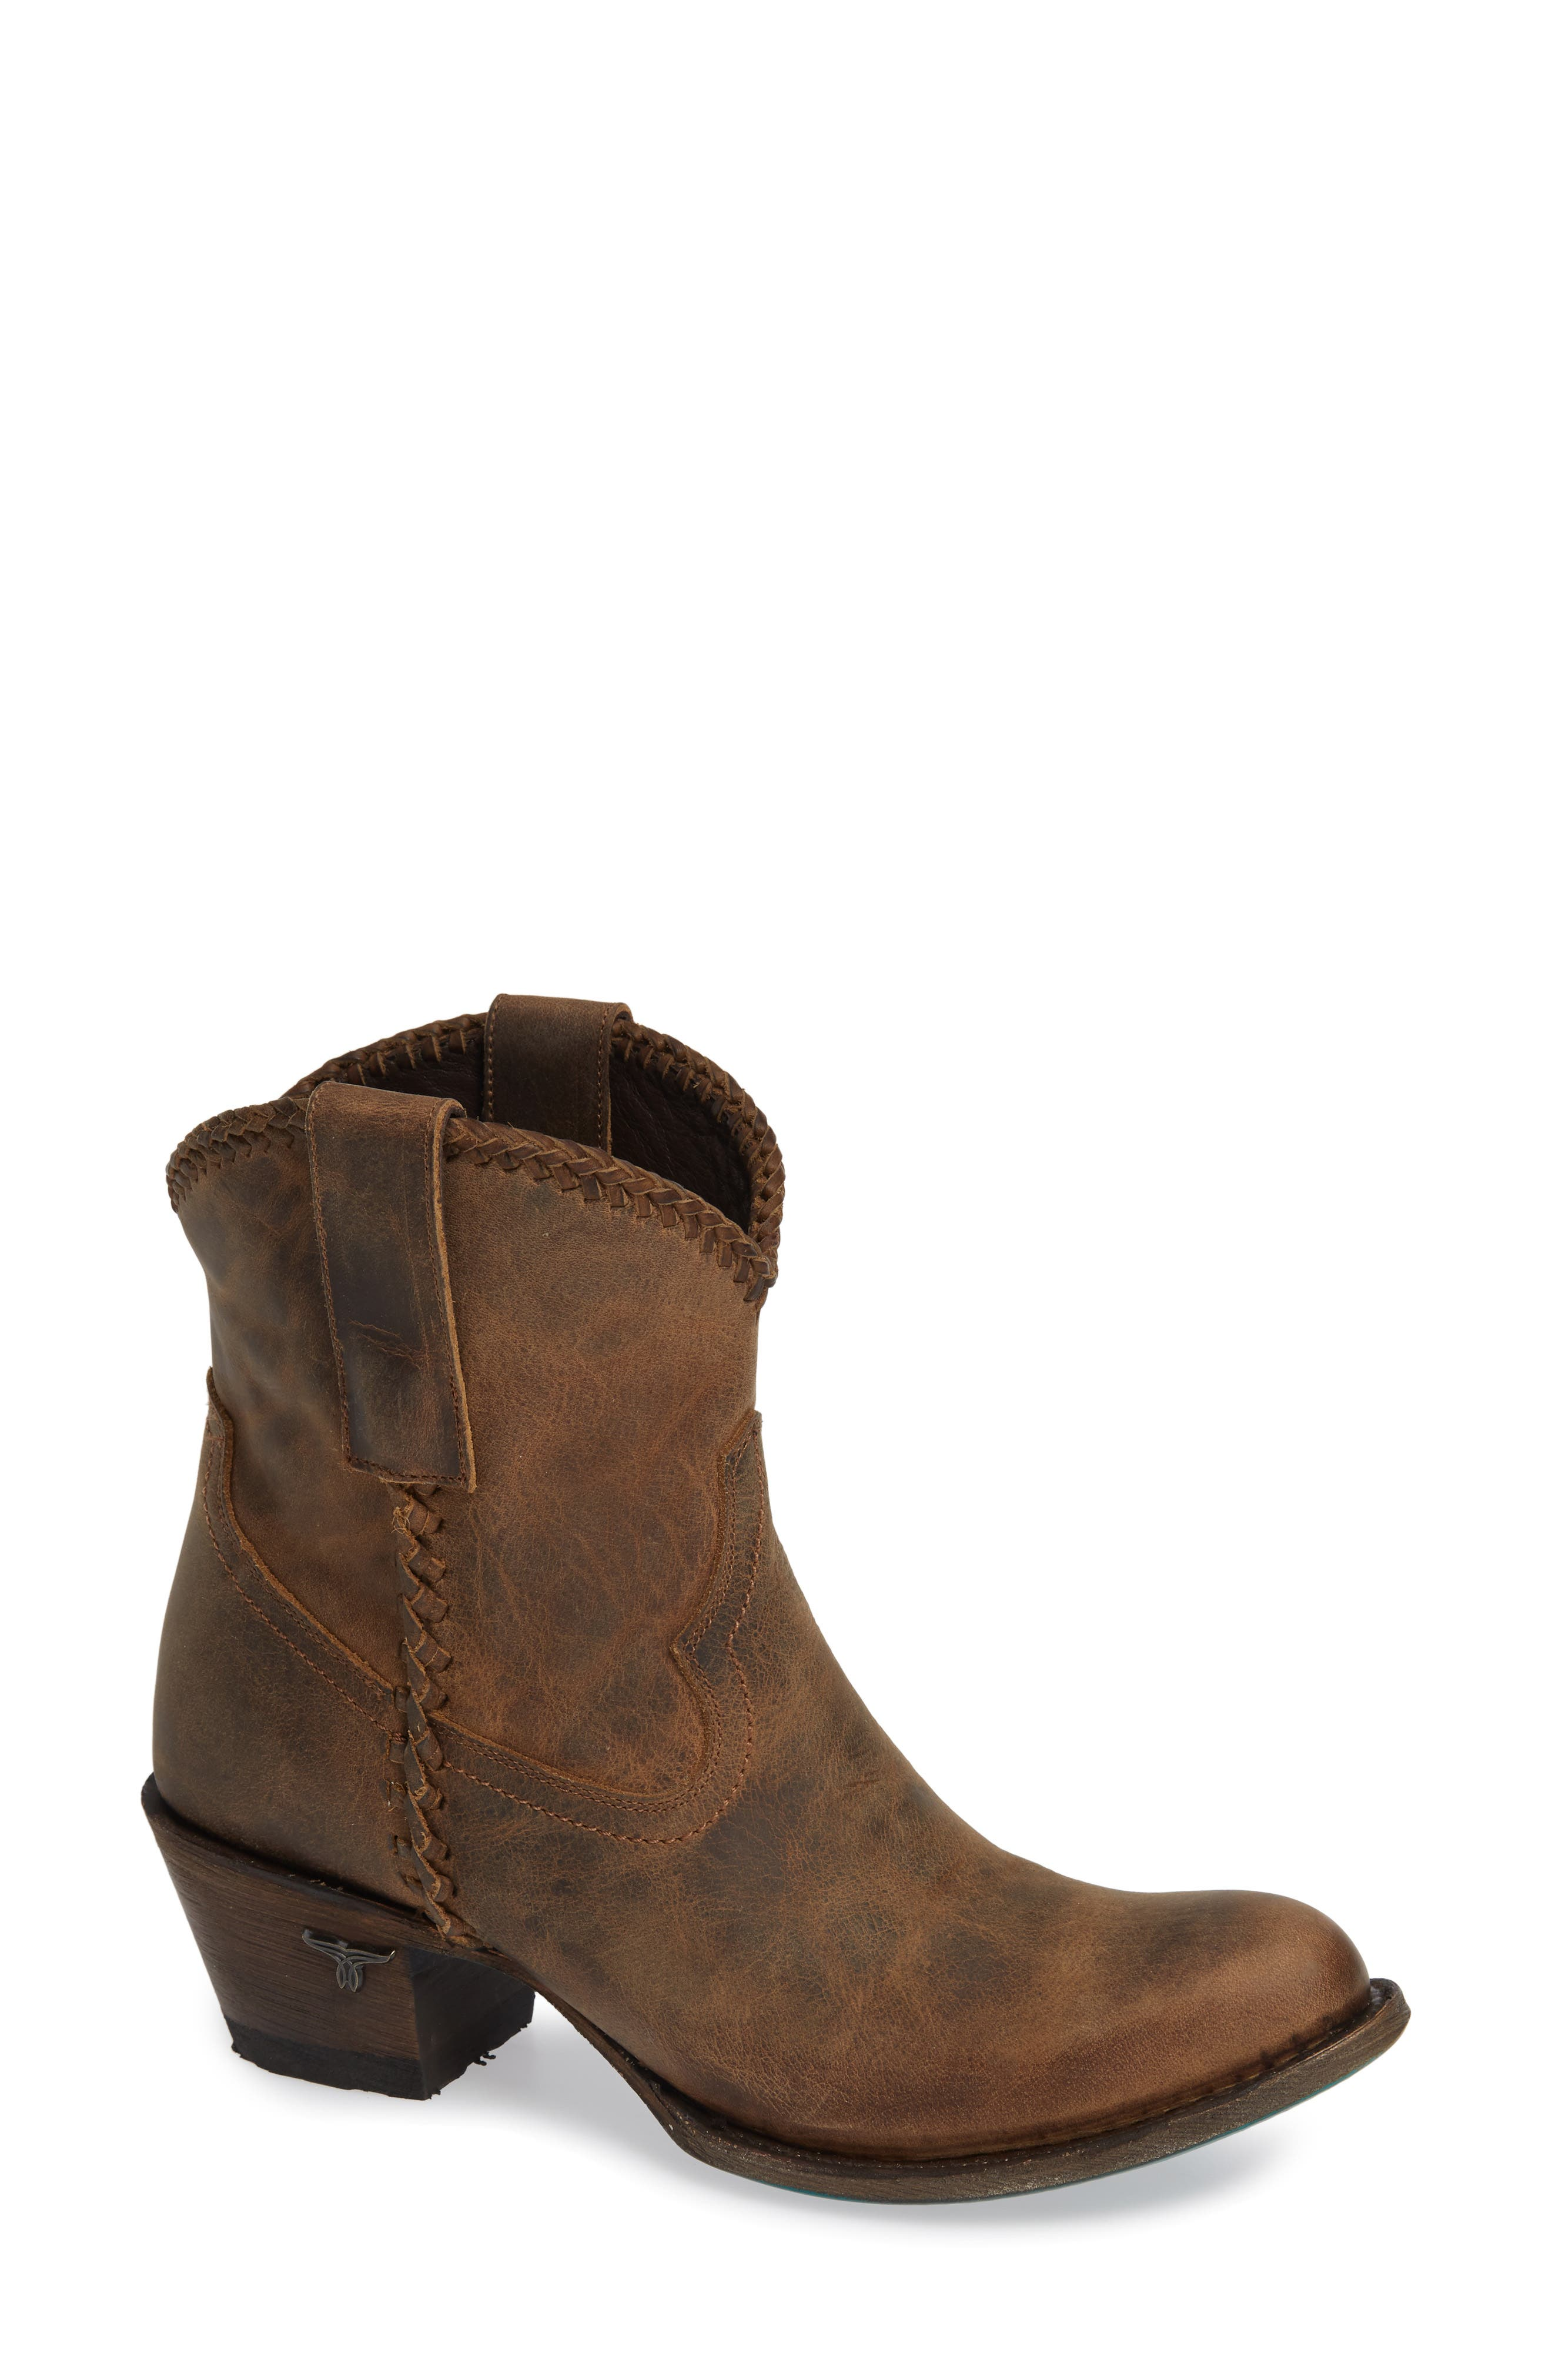 Plain Jane Western Boot,                             Main thumbnail 1, color,                             BROWN LEATHER